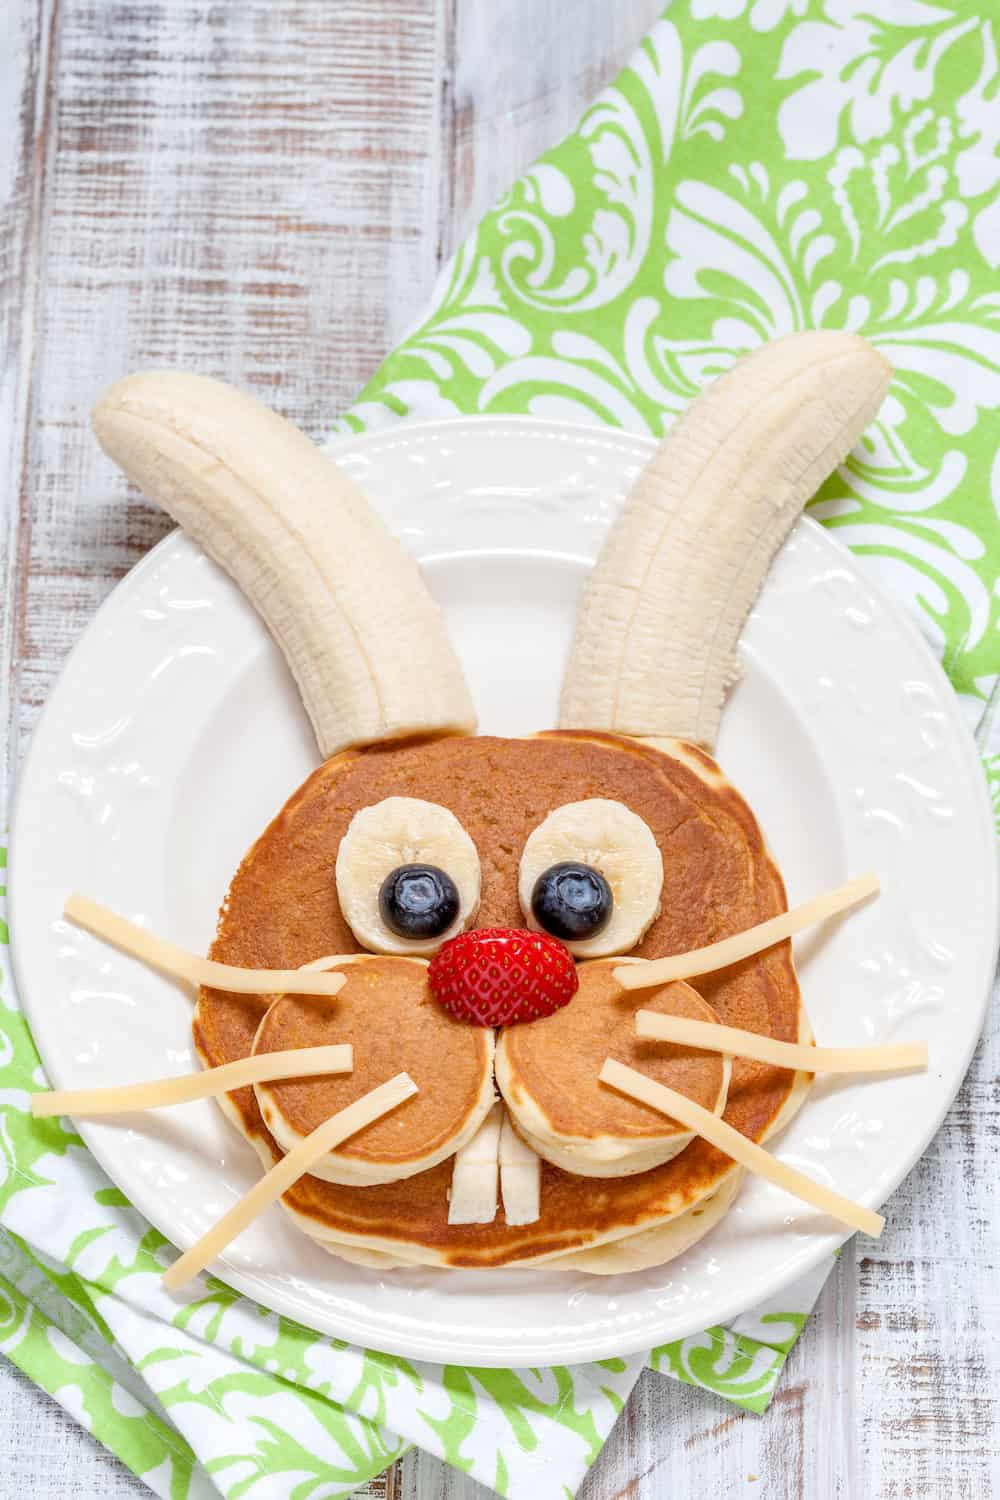 Make your kids' holiday morning special with these Easter bunny pancakes. These are easy to make - you don't need to be a chef to do them!